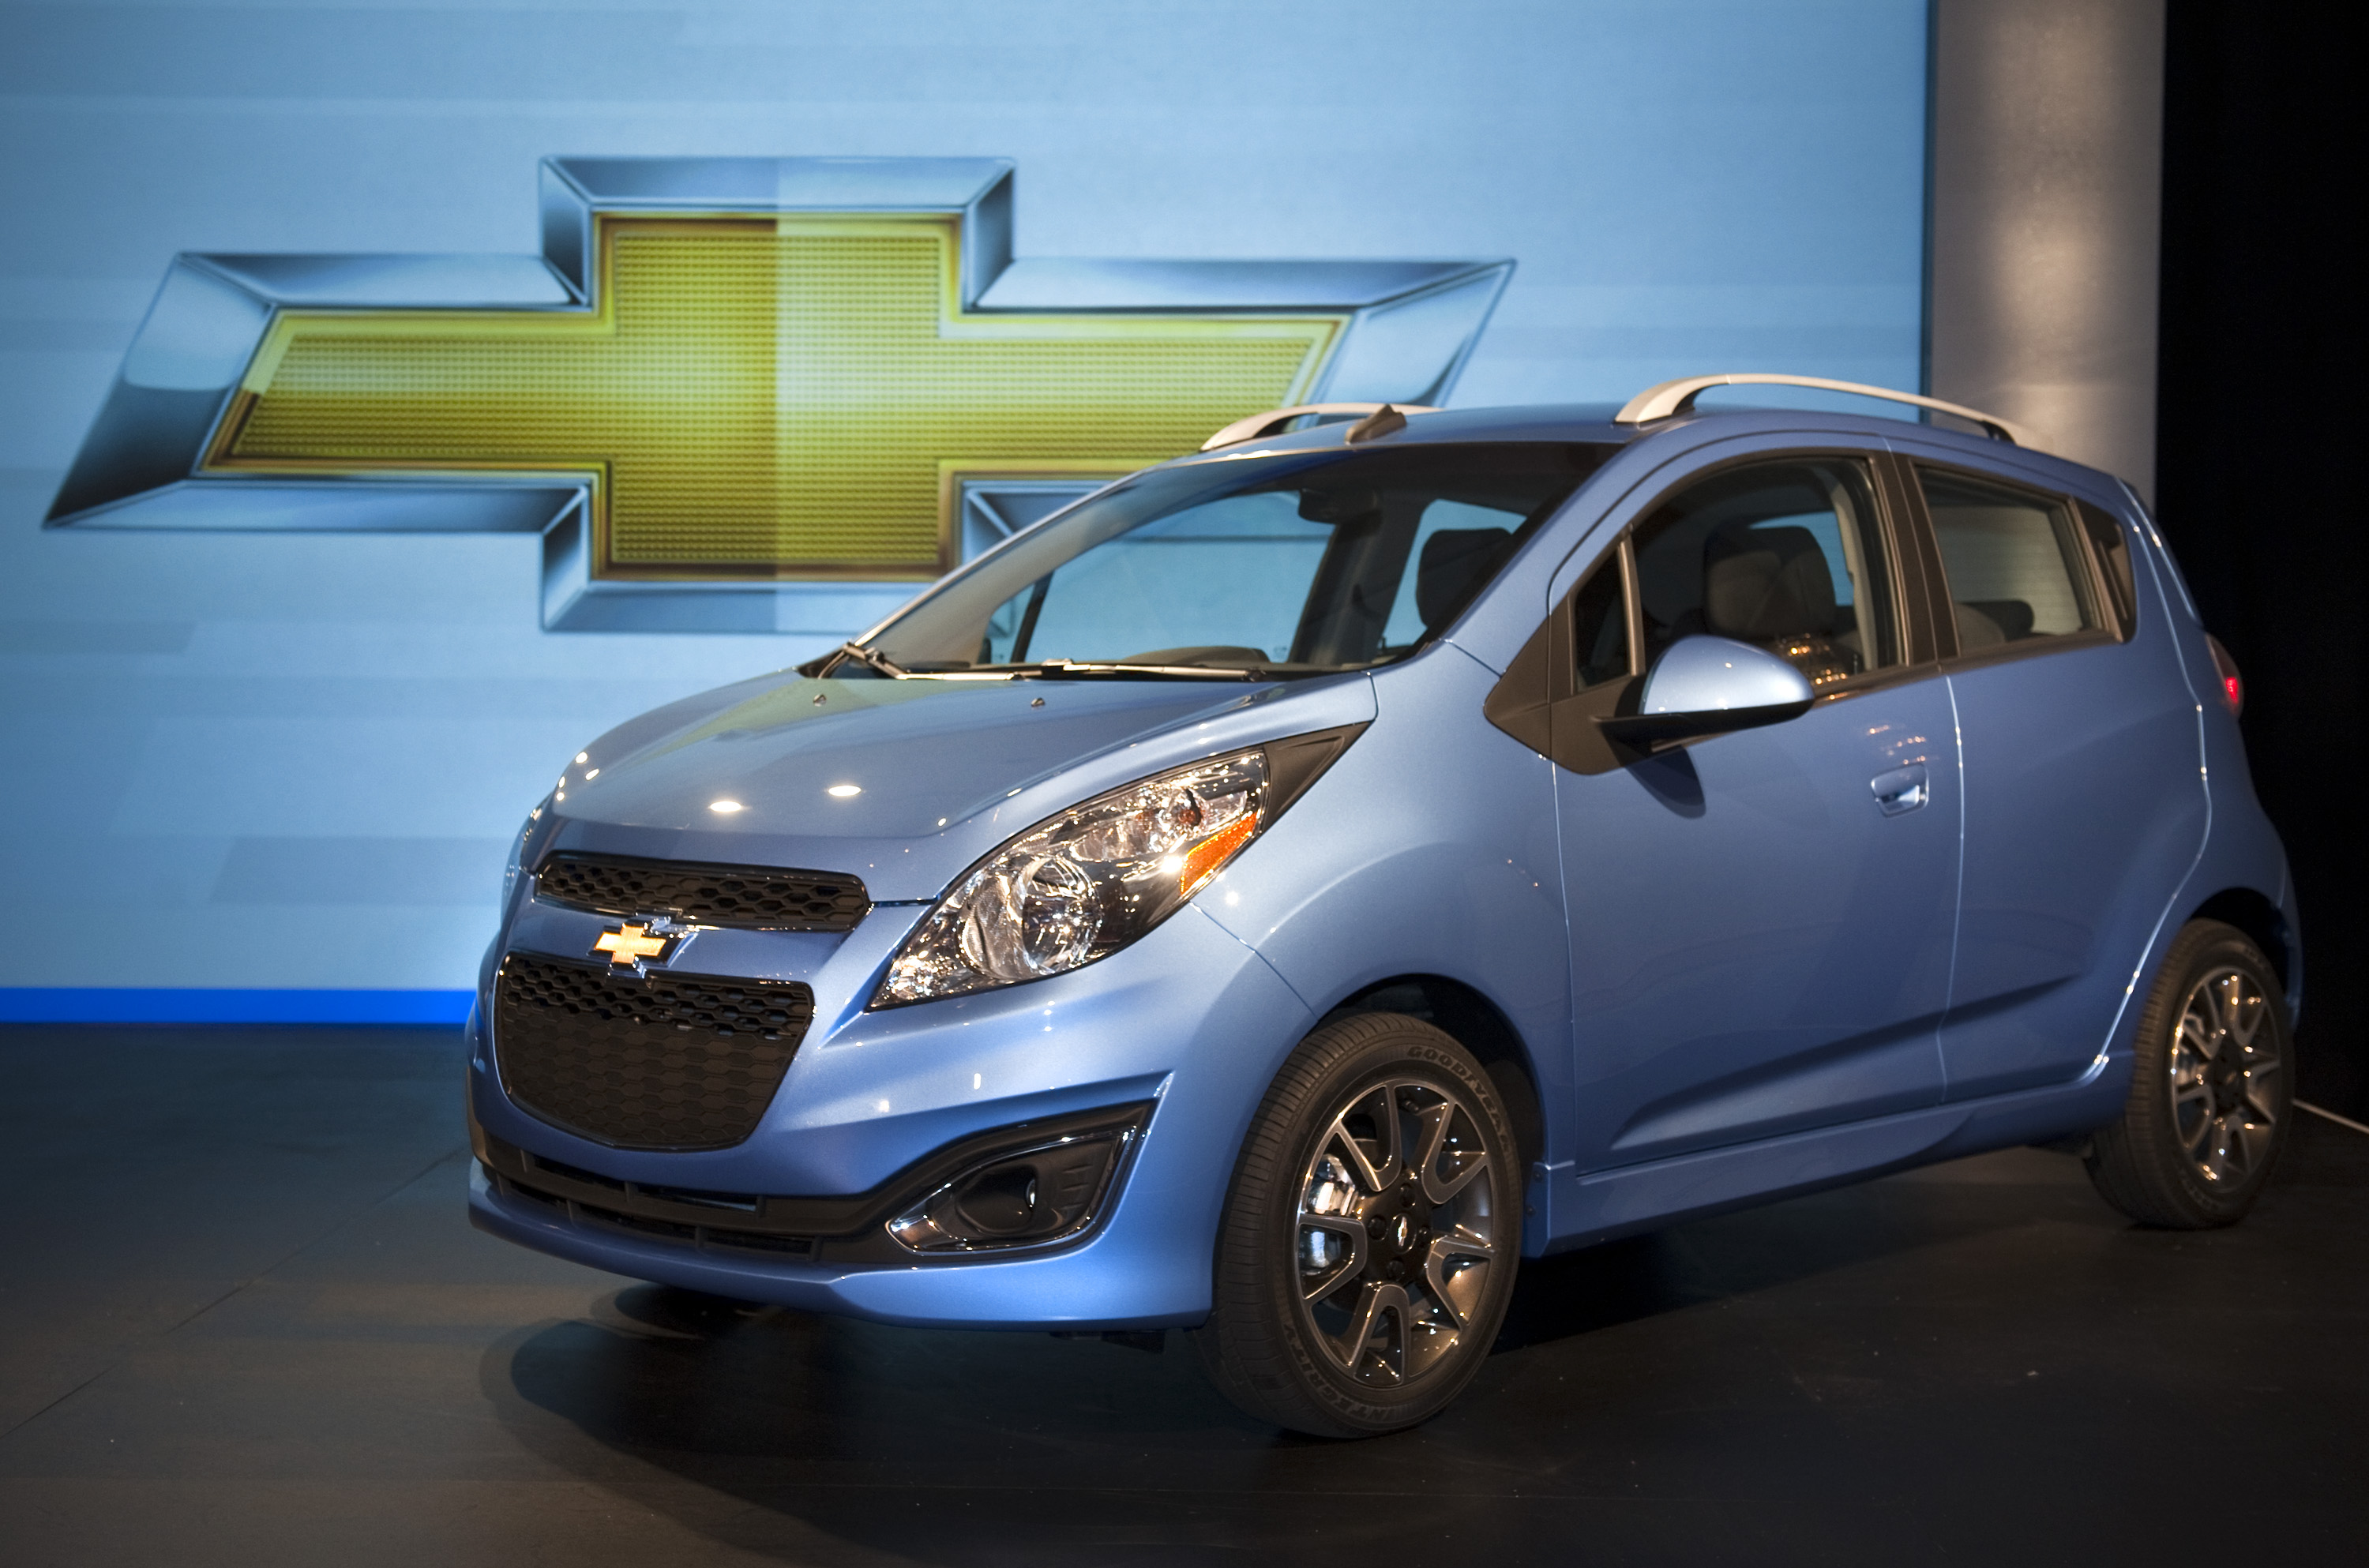 2013 Chevrolet Spark Minicar Unveiled In Detroit October